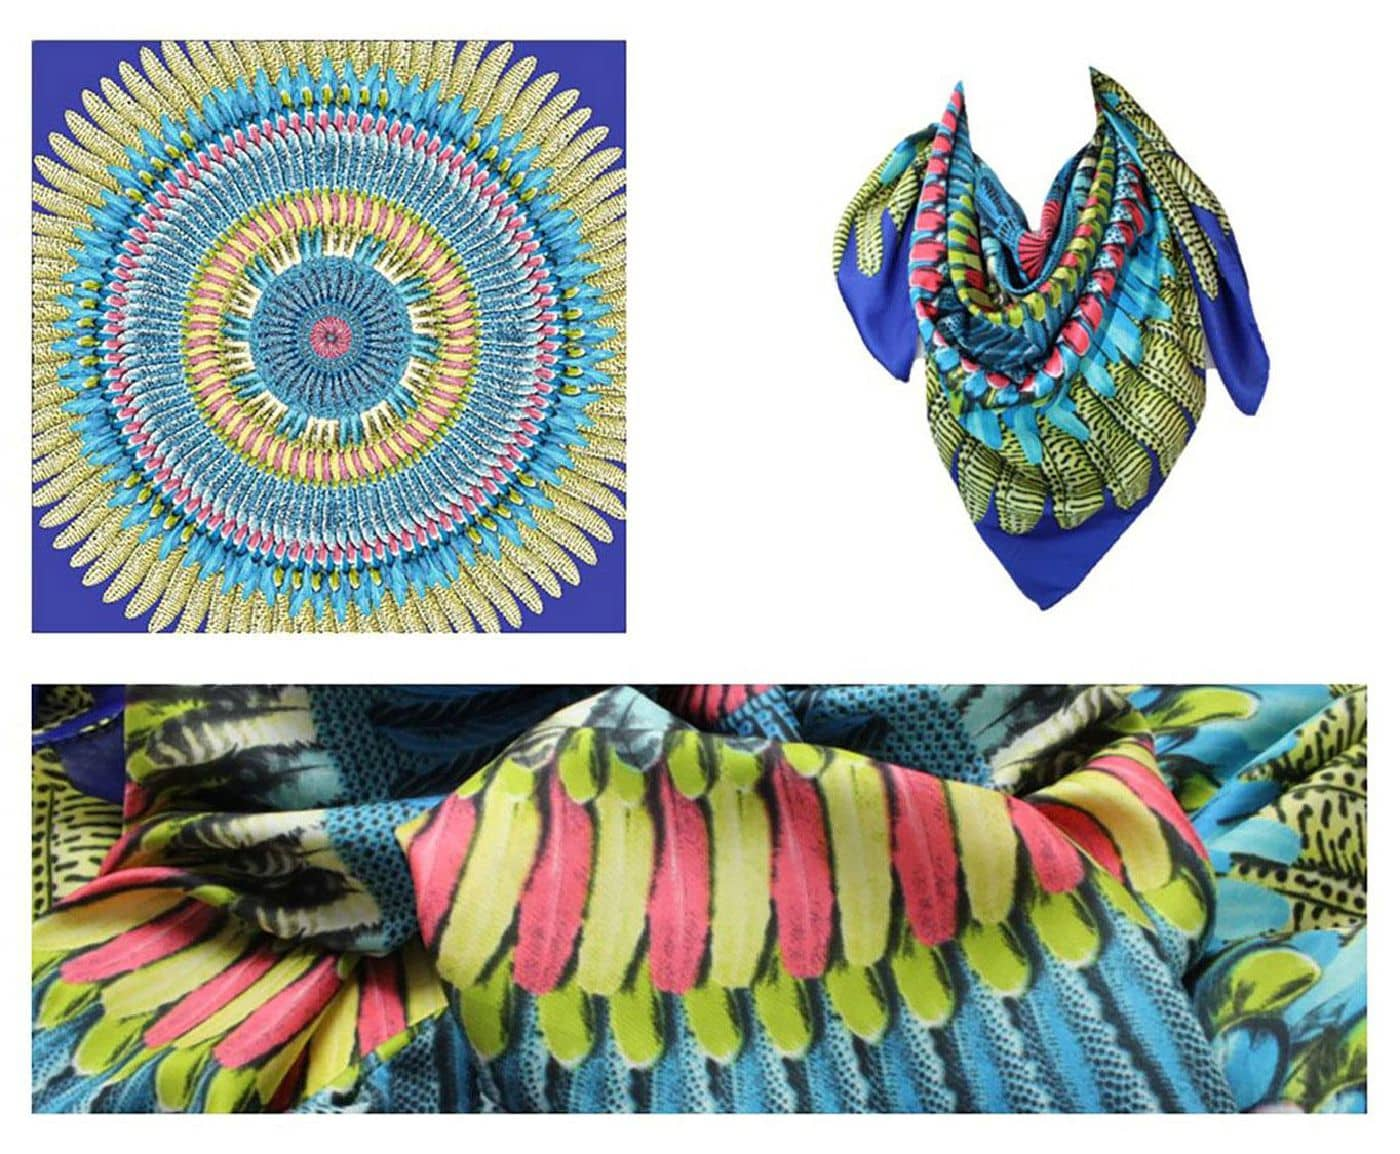 Italian silk scarves wholesale: manufacturers of silk scarves in